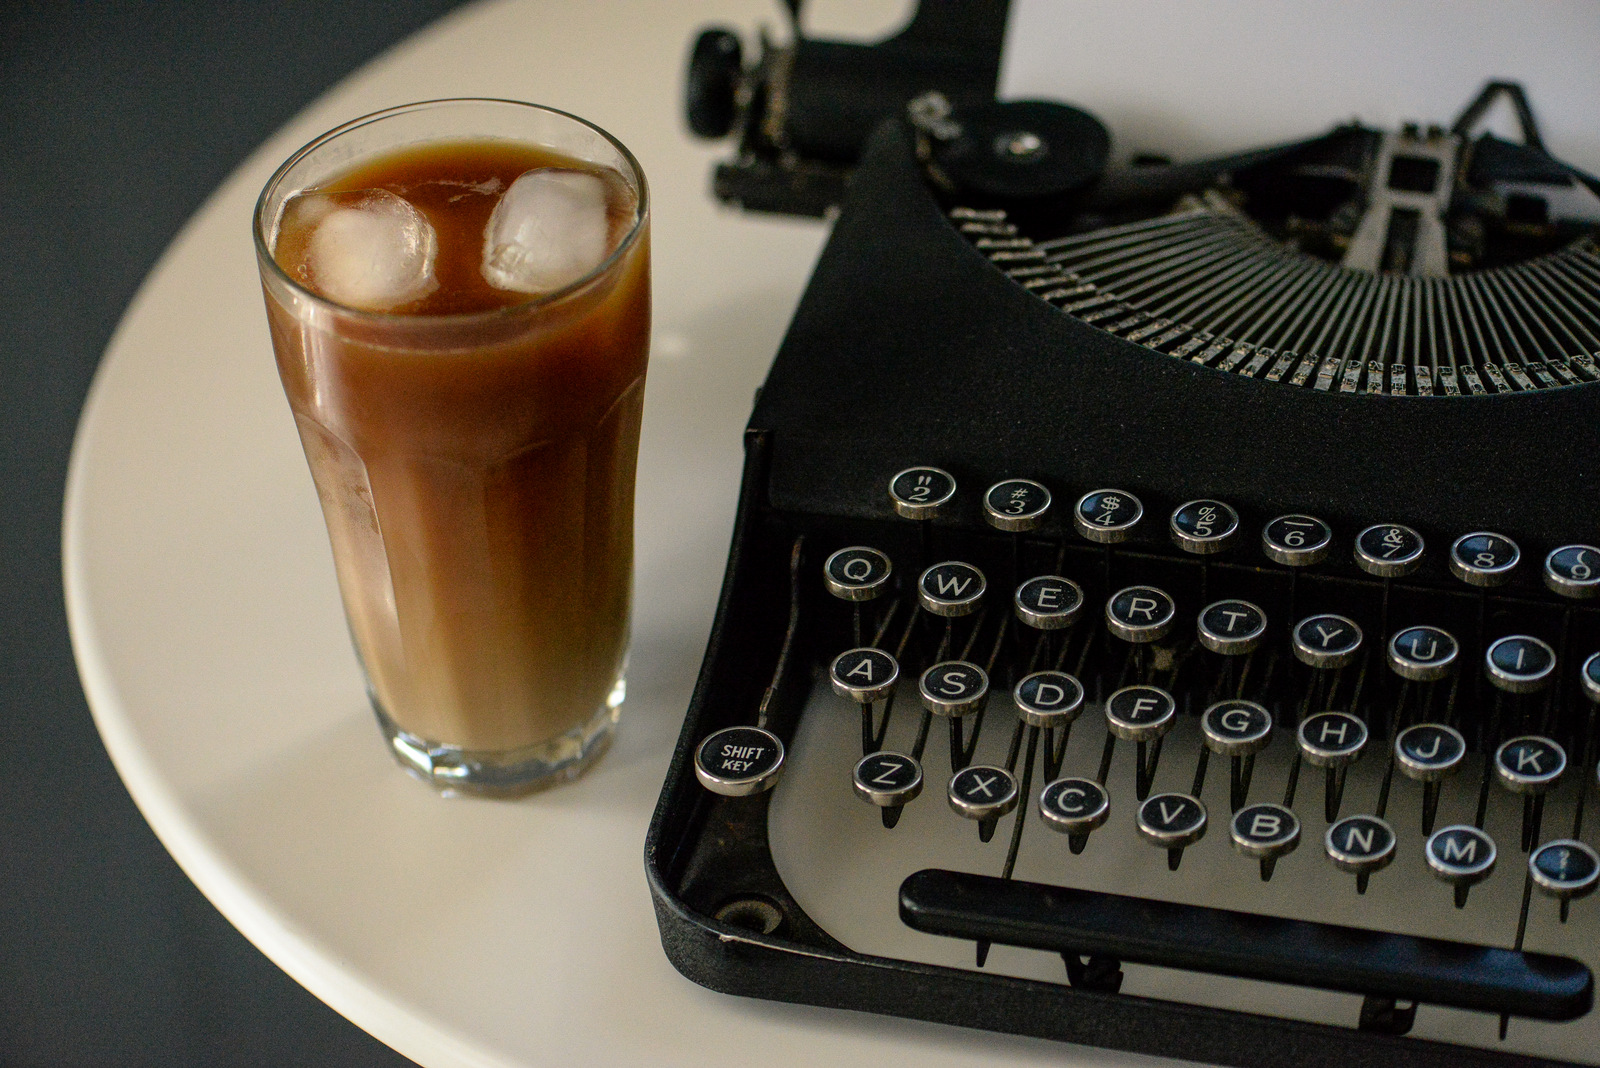 typewriter and iced coffee